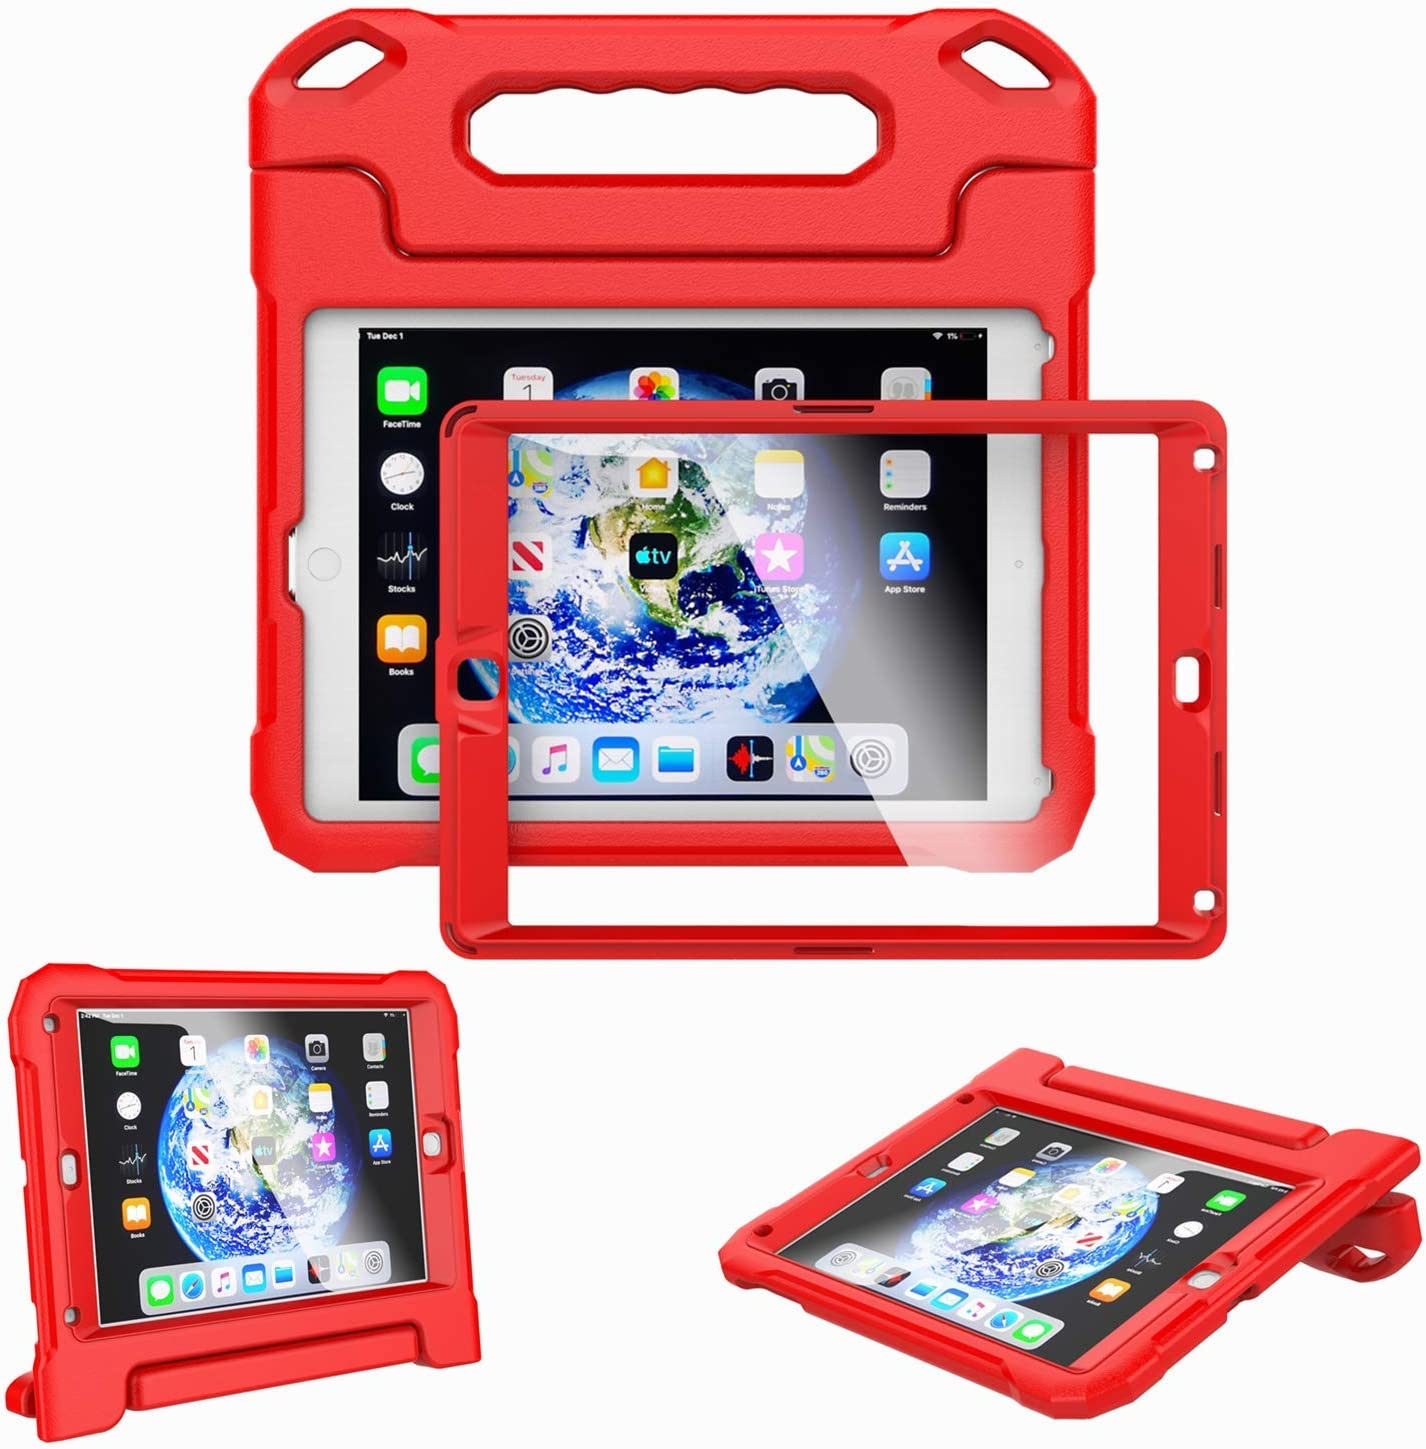 Kids Case for iPad 9.7-inch 2018 6th Generation / 2017 5th Generation & iPad 9.7-inch Air / Air 2 - Built-in Screen Protector Shockproof Light Weight Handle Convertible Stand Cover (Red)